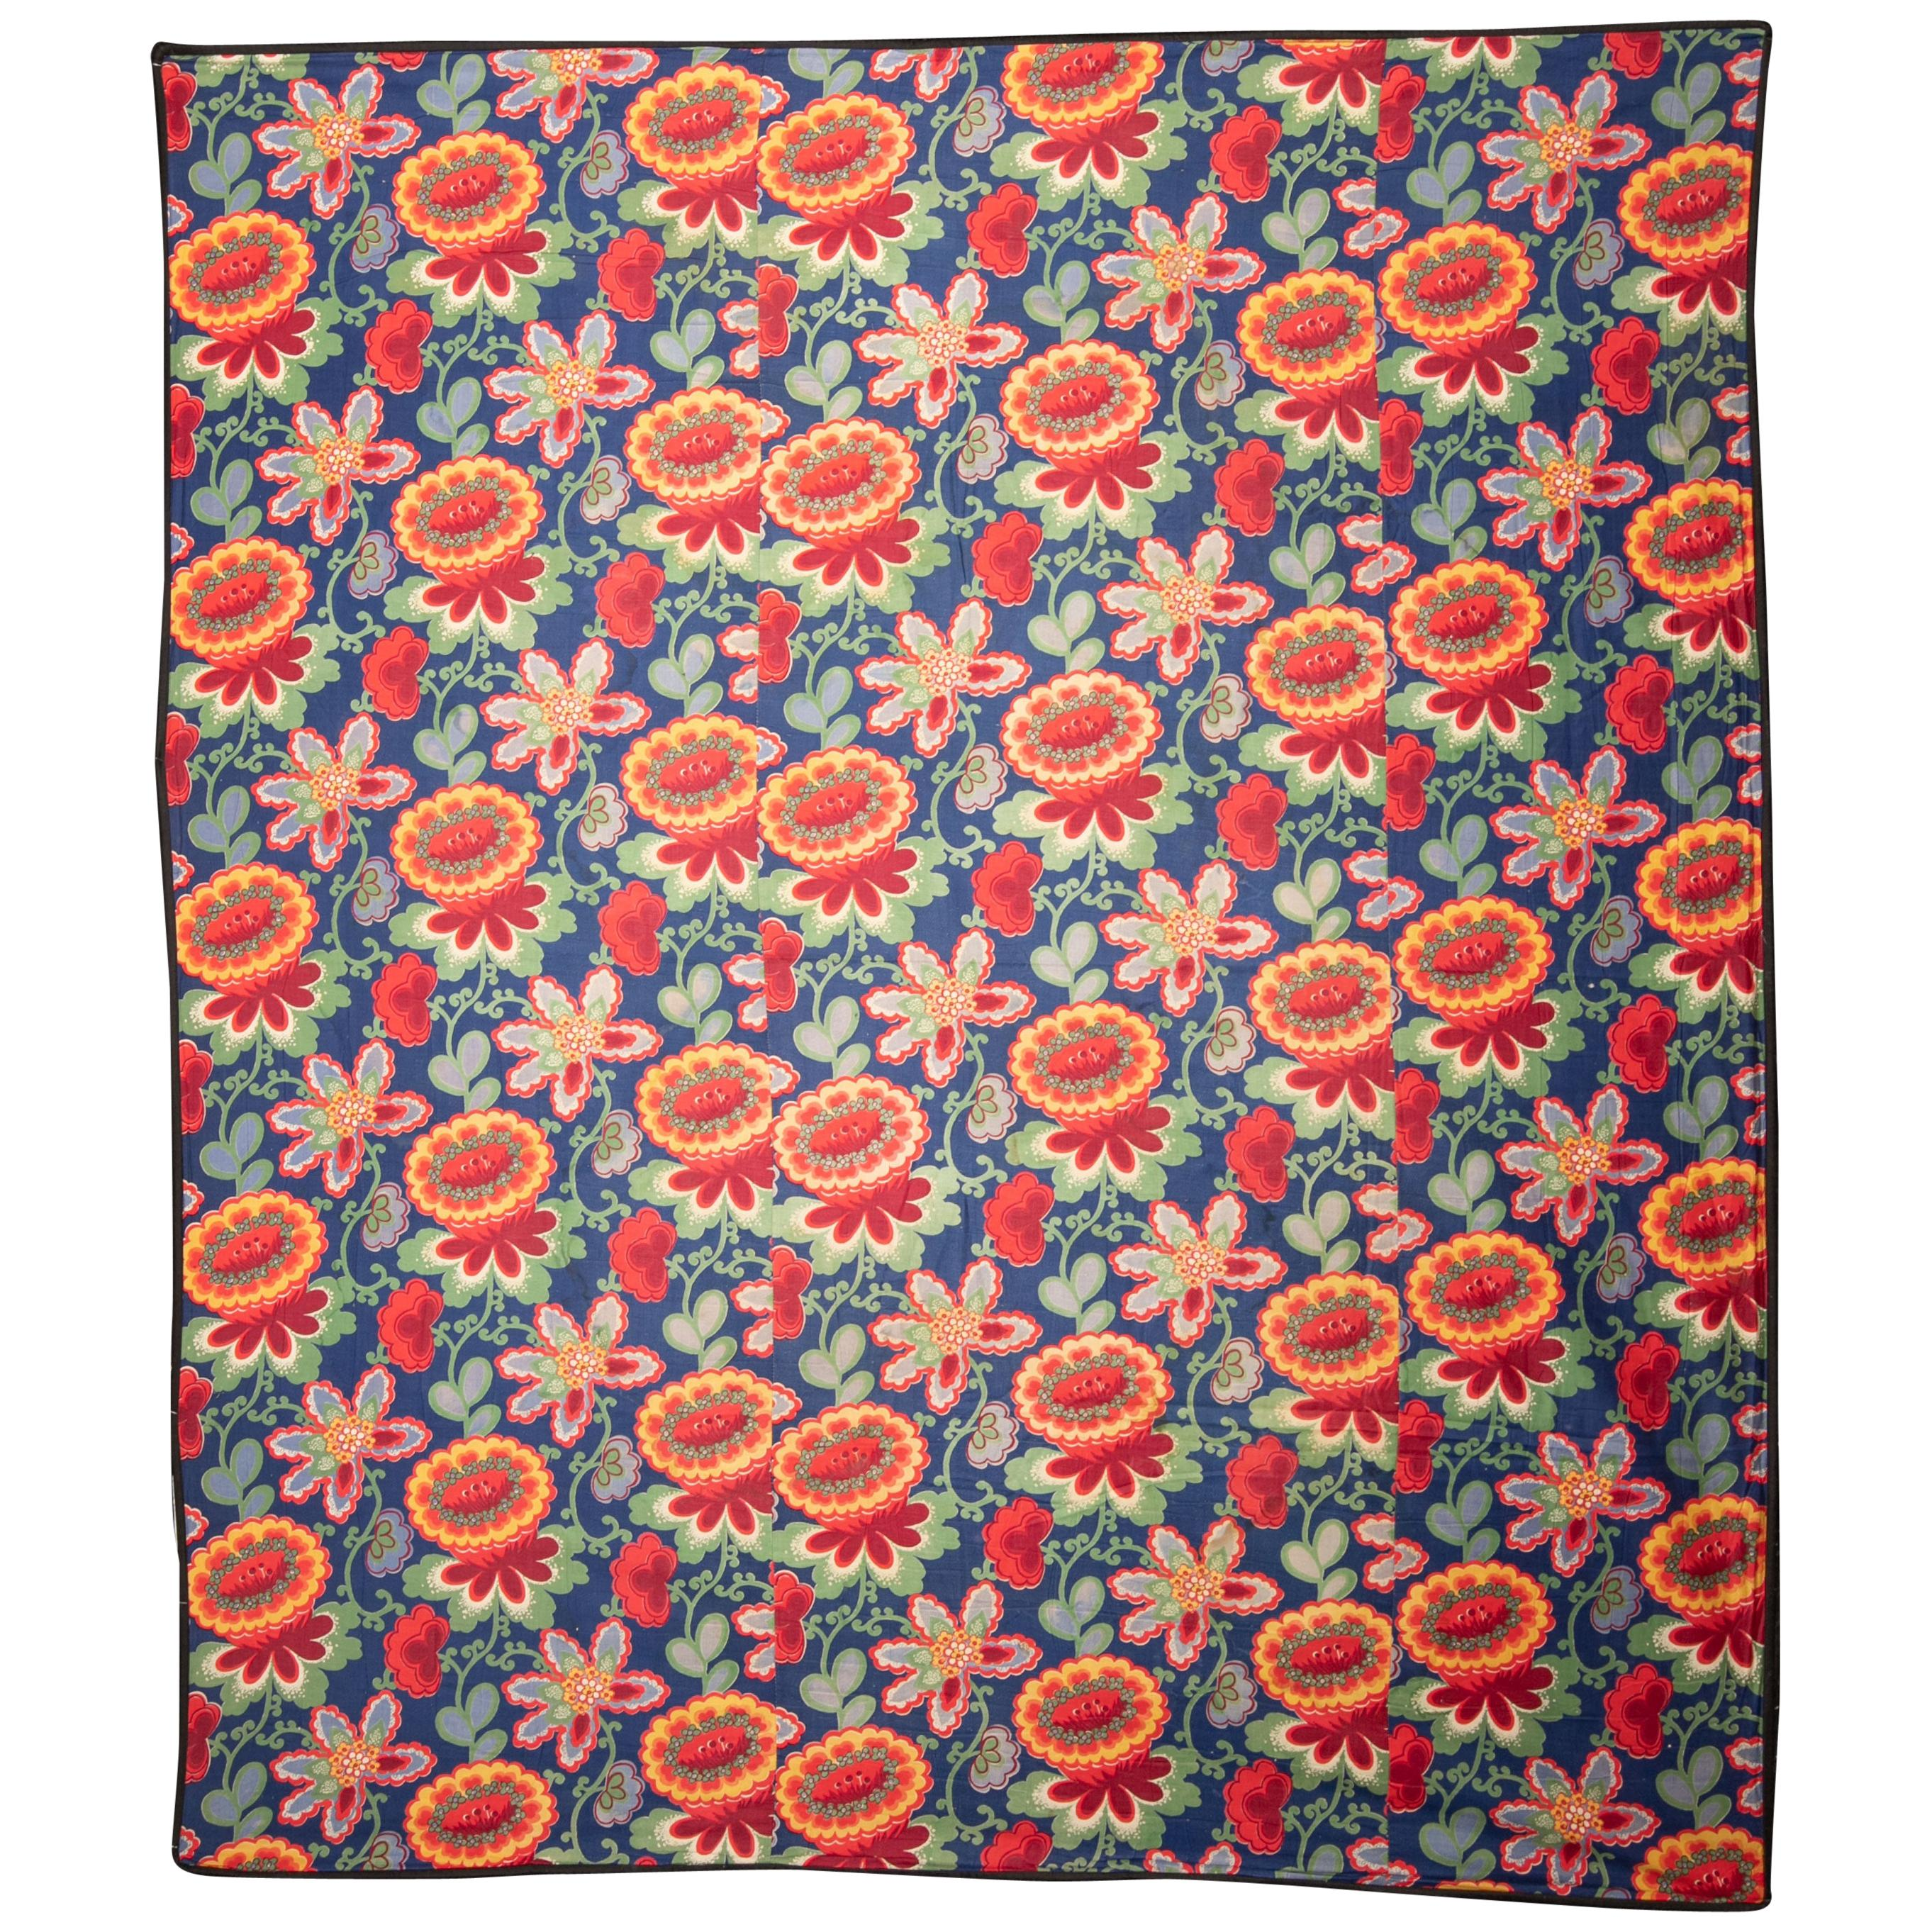 Russian Printed Cotton Fabric Panel, Mid-20th Century or Earlier